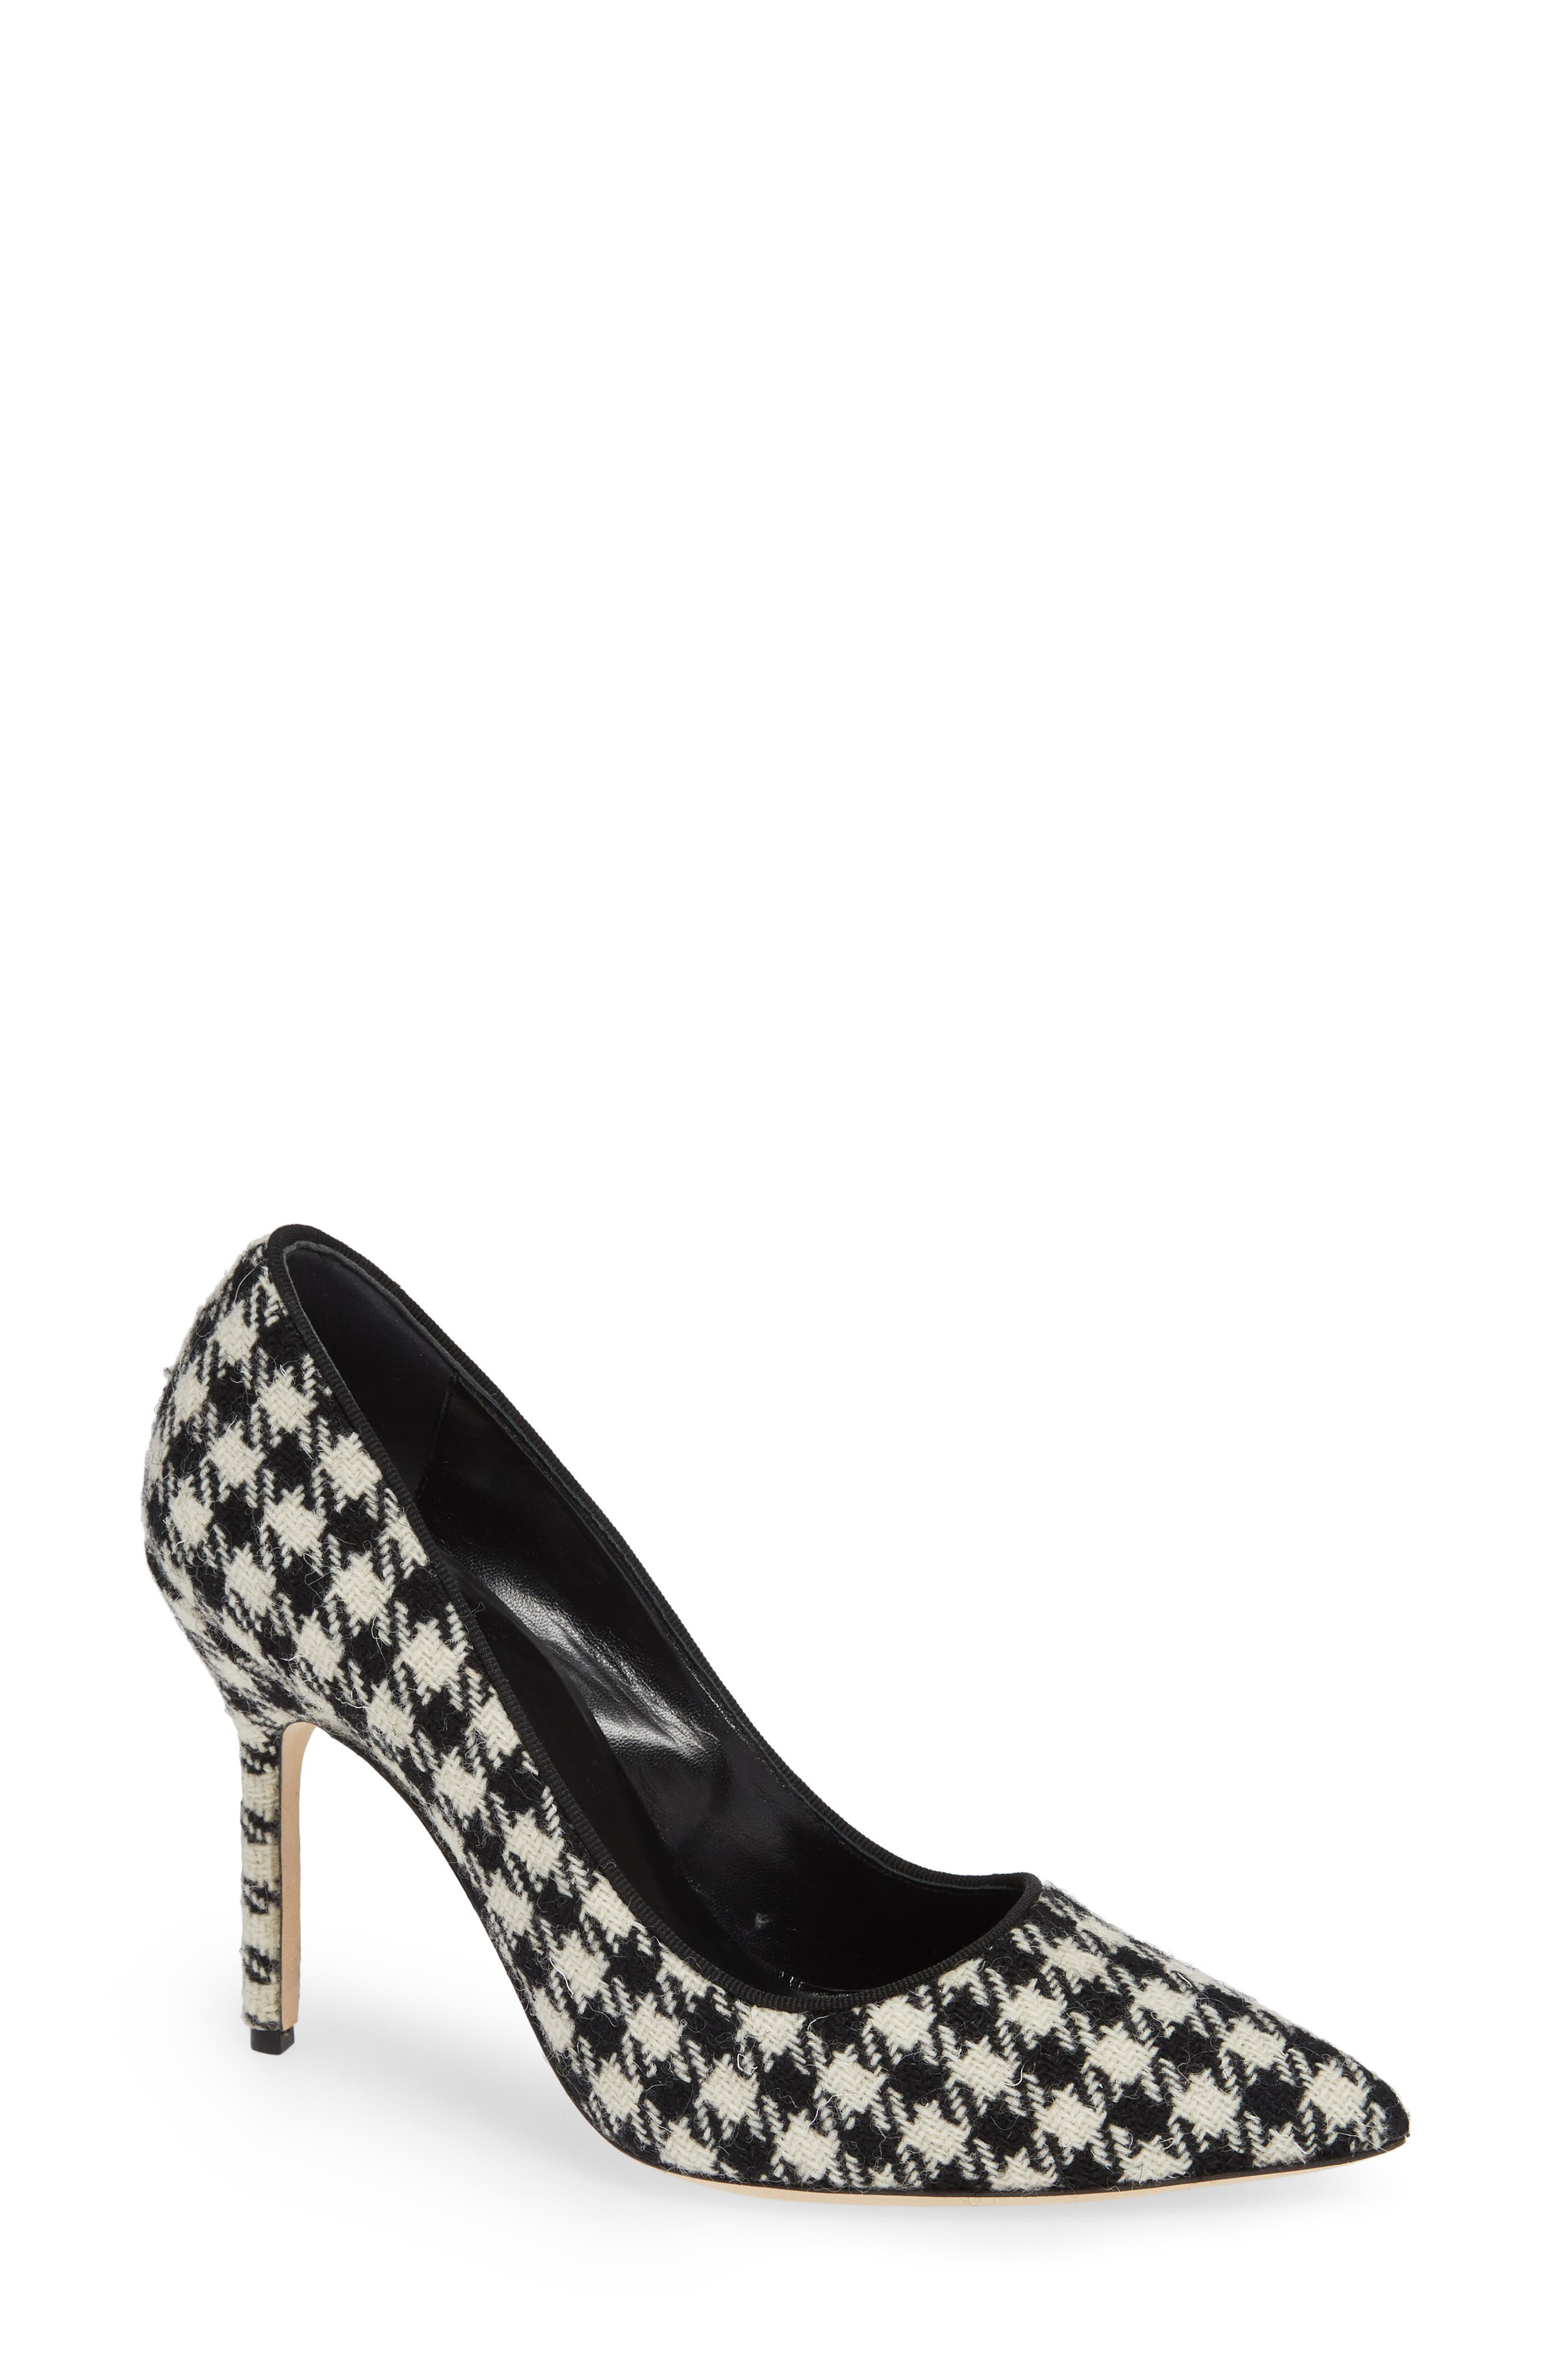 BB Pointy Toe Pump,                             Main thumbnail 1, color,                             HOUNDSTOOTH